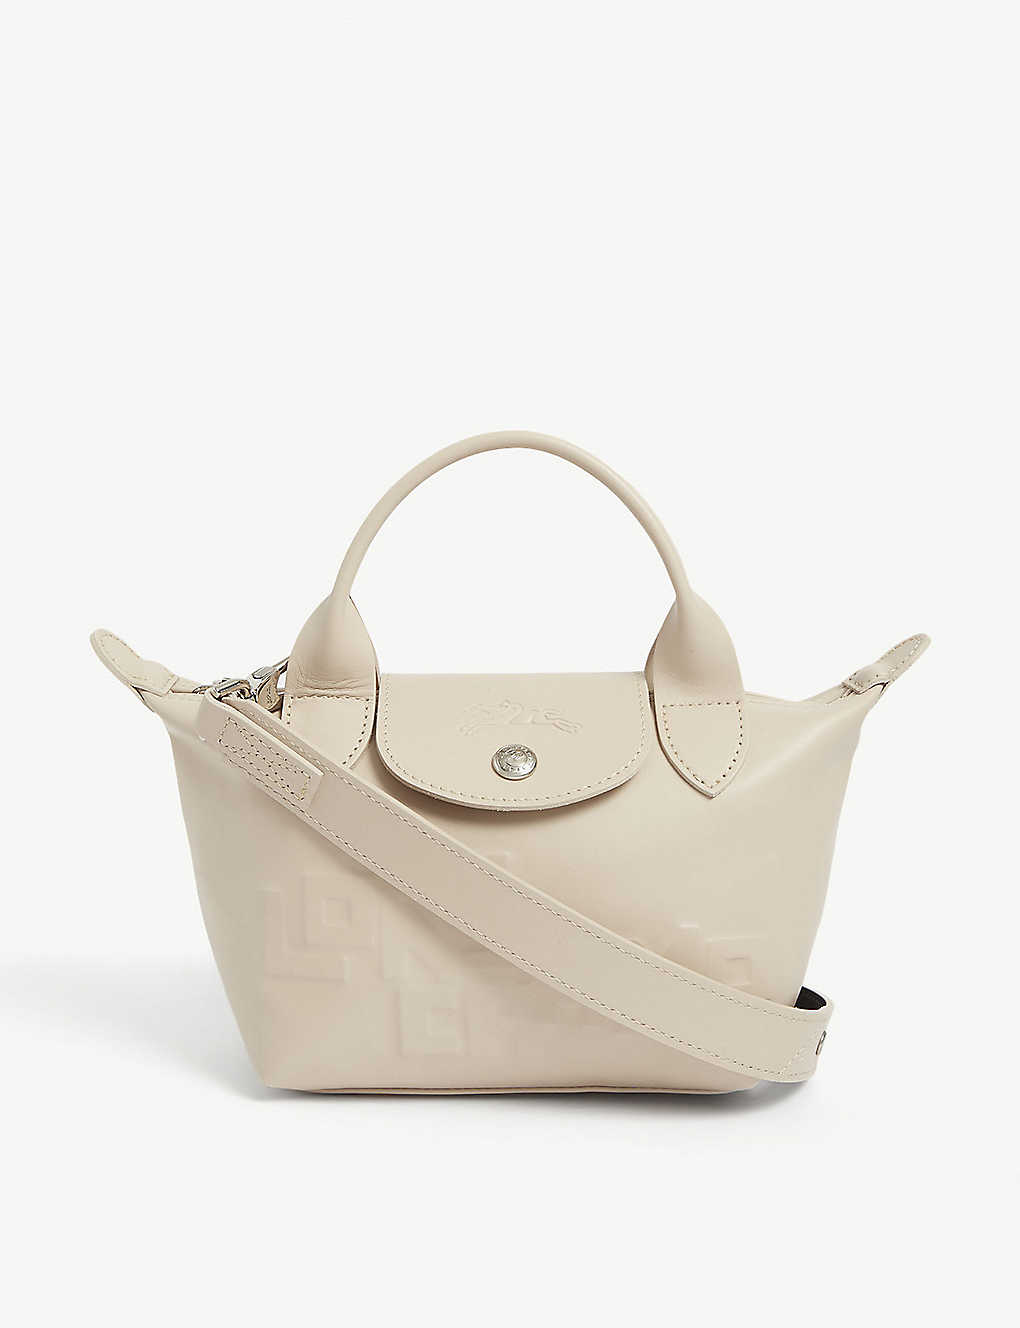 Le Pliage Cuir mini embossed leather top handle bag - CHALK